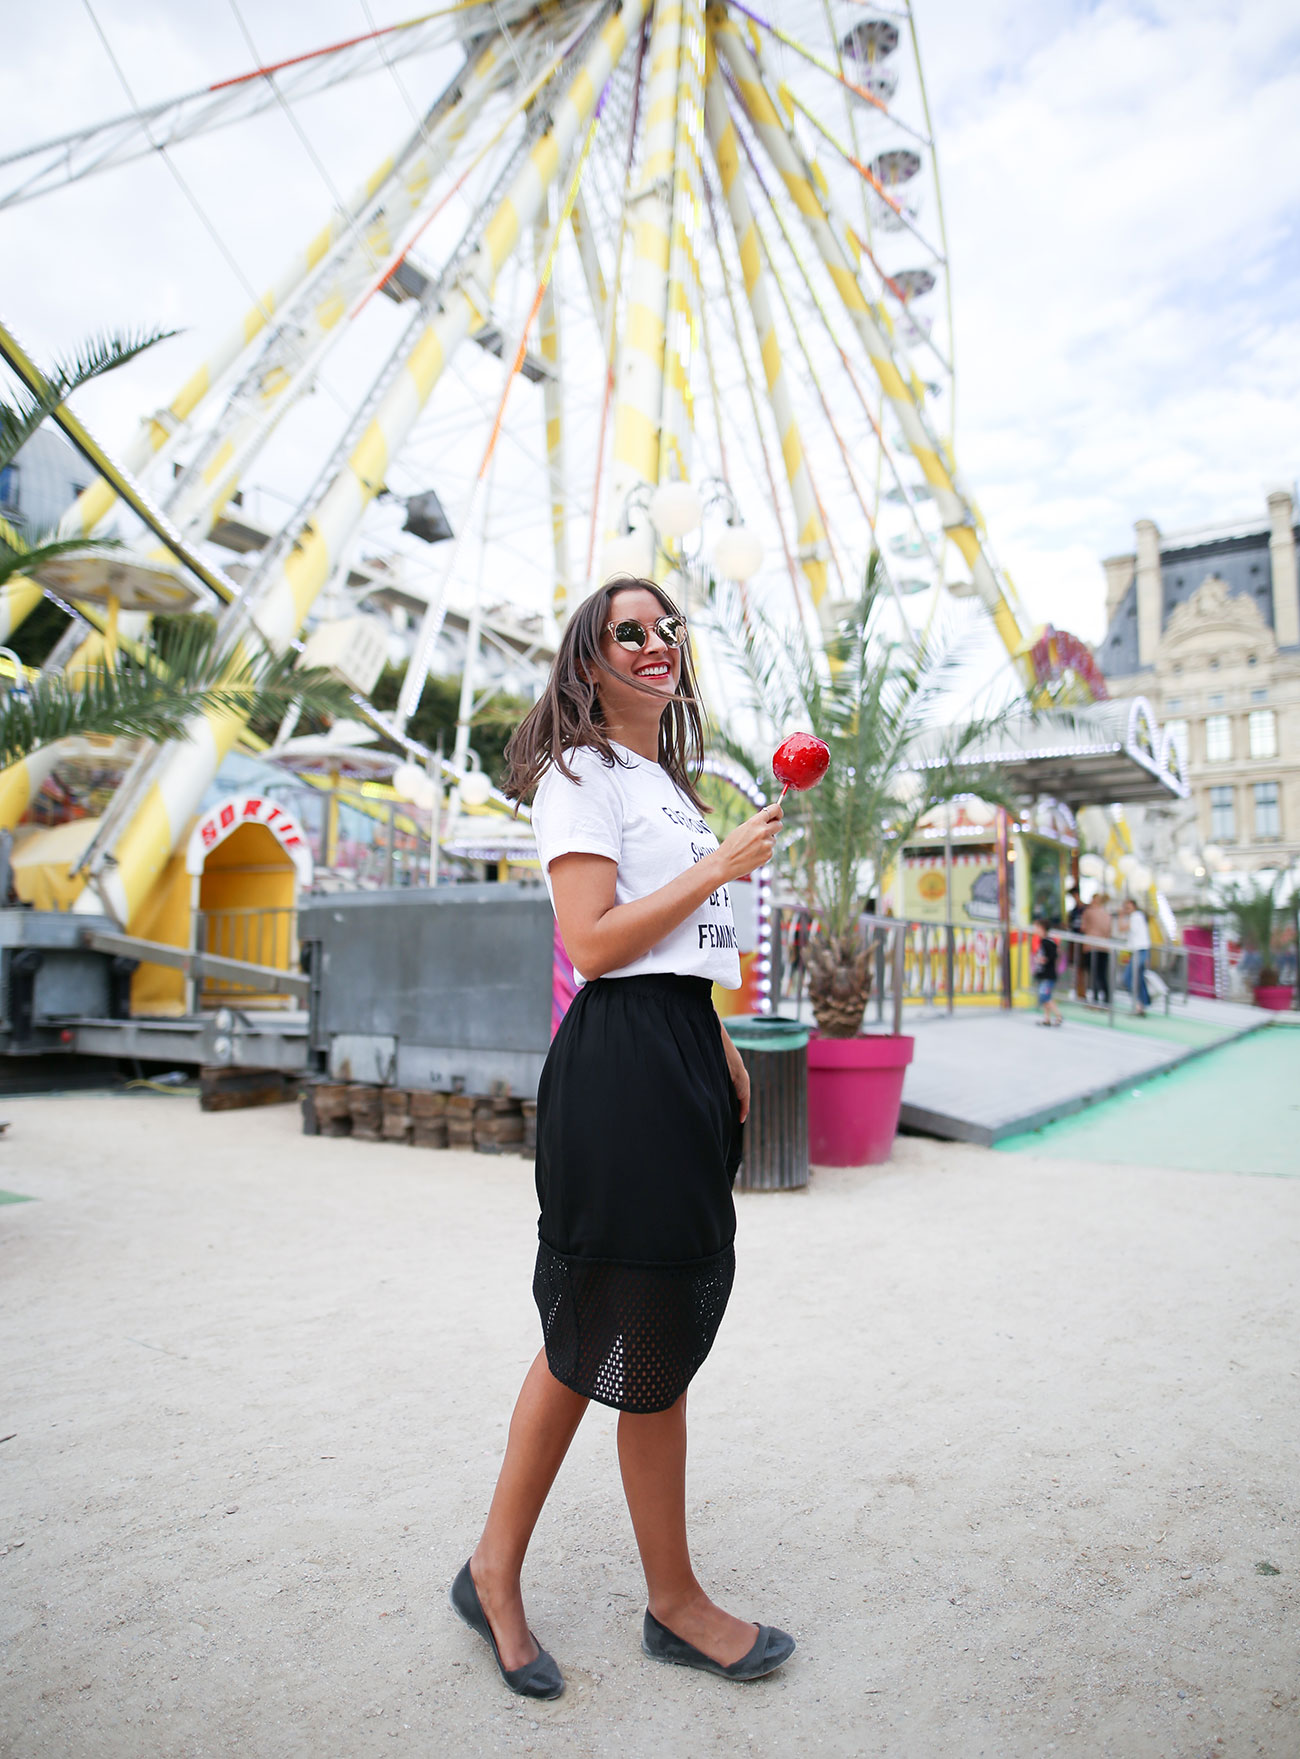 eat life with style, christian louboutin, loubilaque, rouge à lèvres, makeup, maquillage, fête foraine, paris, jardin des tuileries